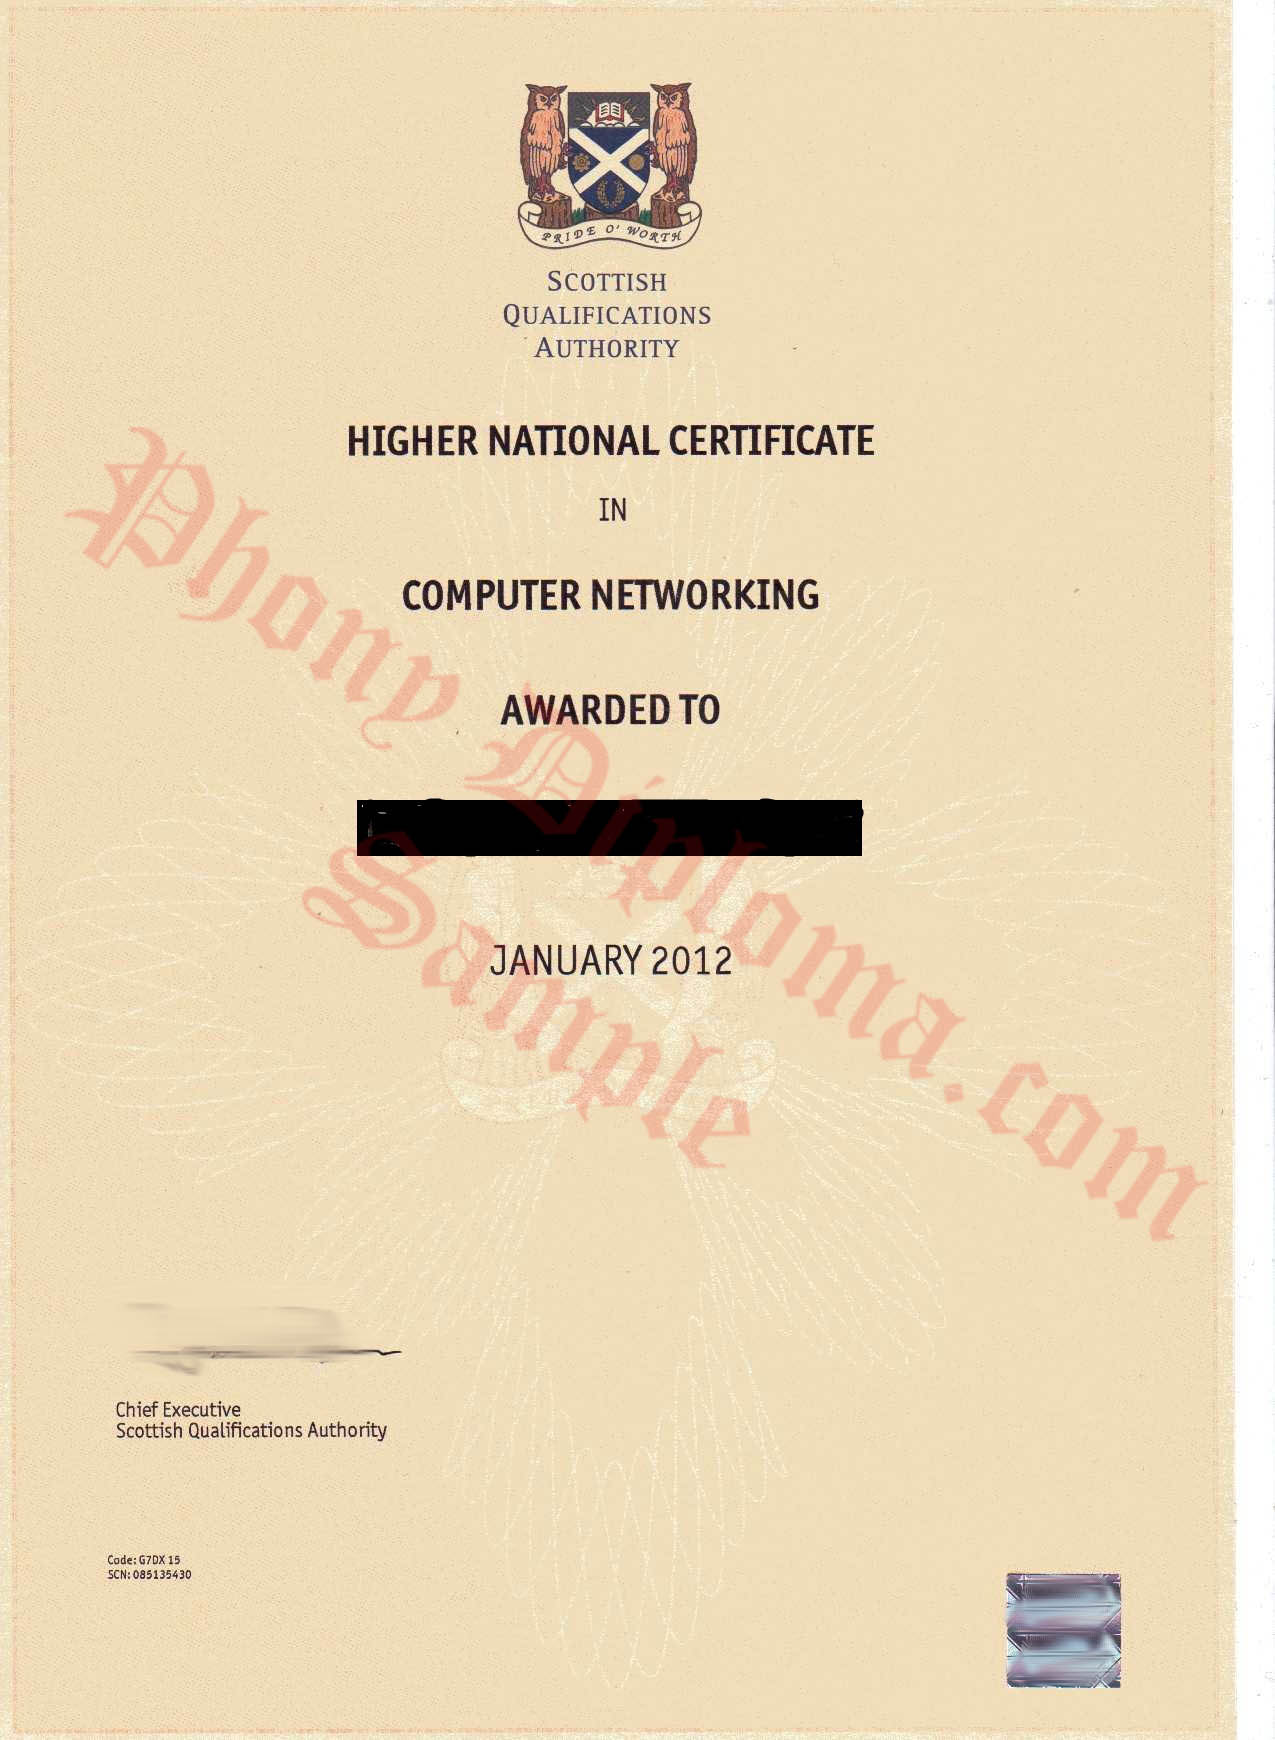 Hnc Or Hnd Scottish Qualification Authority Free Sample From Phonydiploma